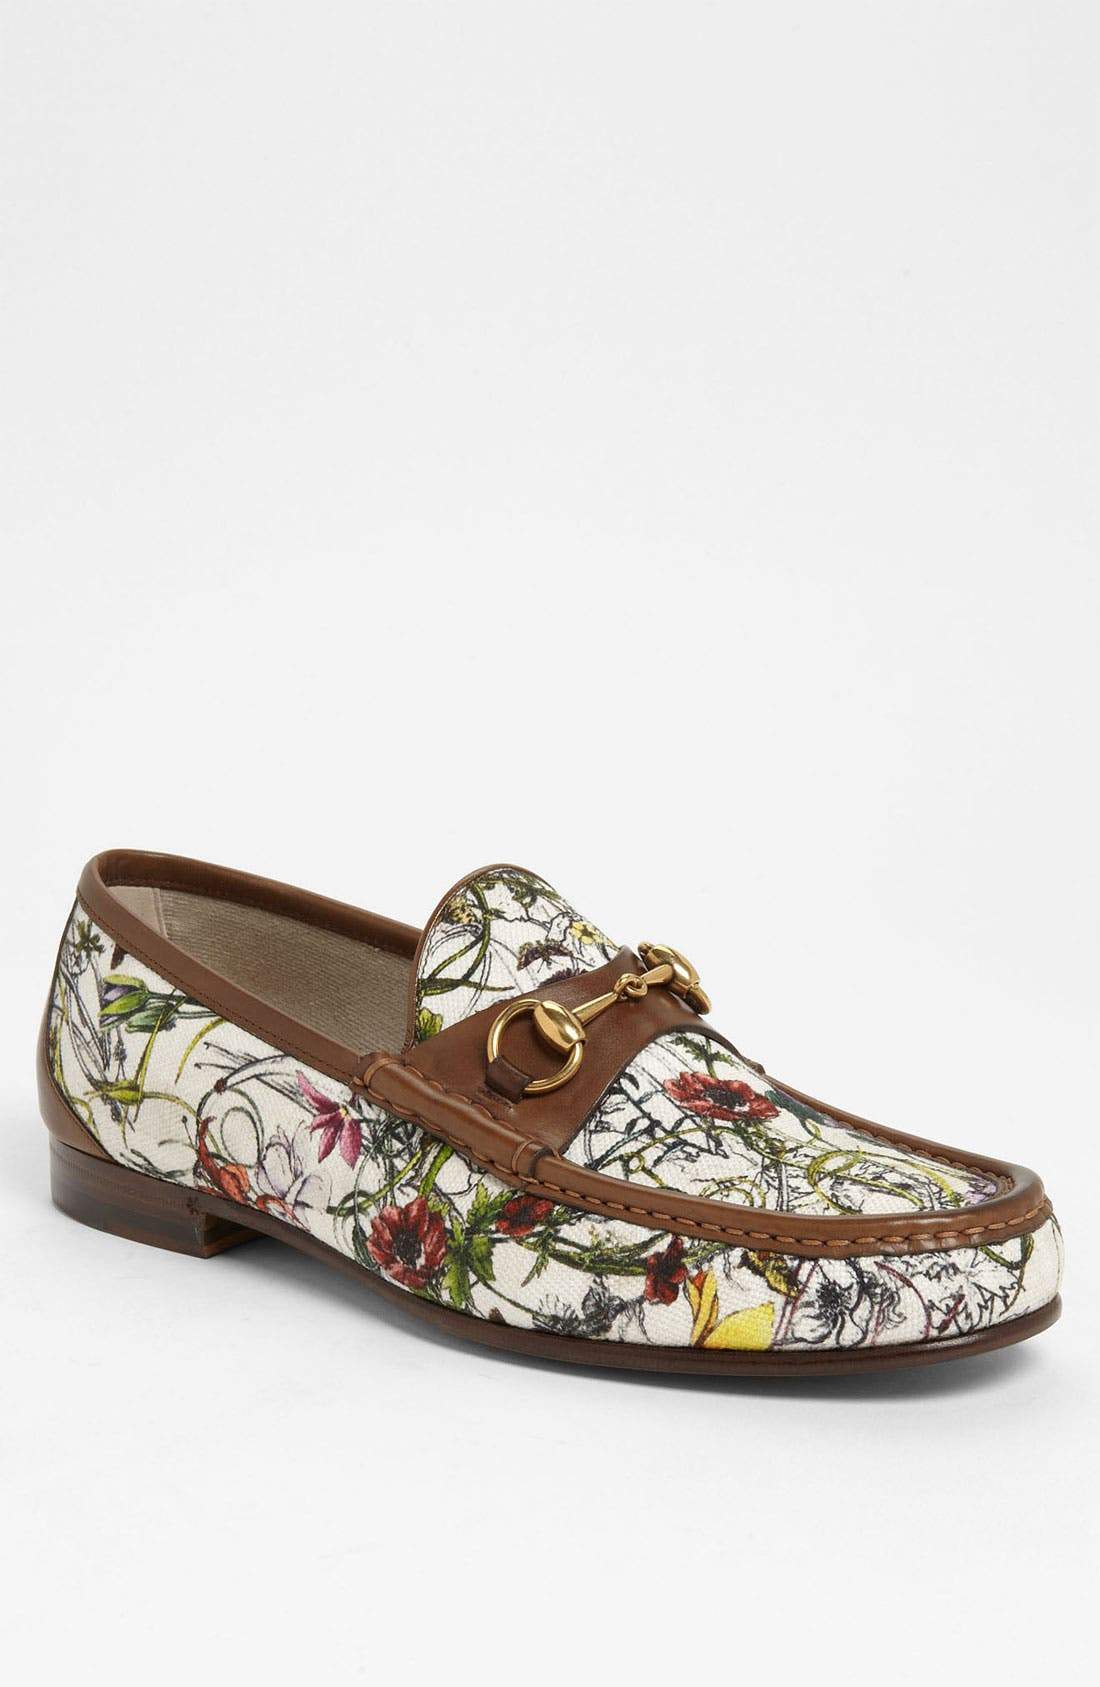 Main Image - Gucci 'Roos' Floral Bit Loafer